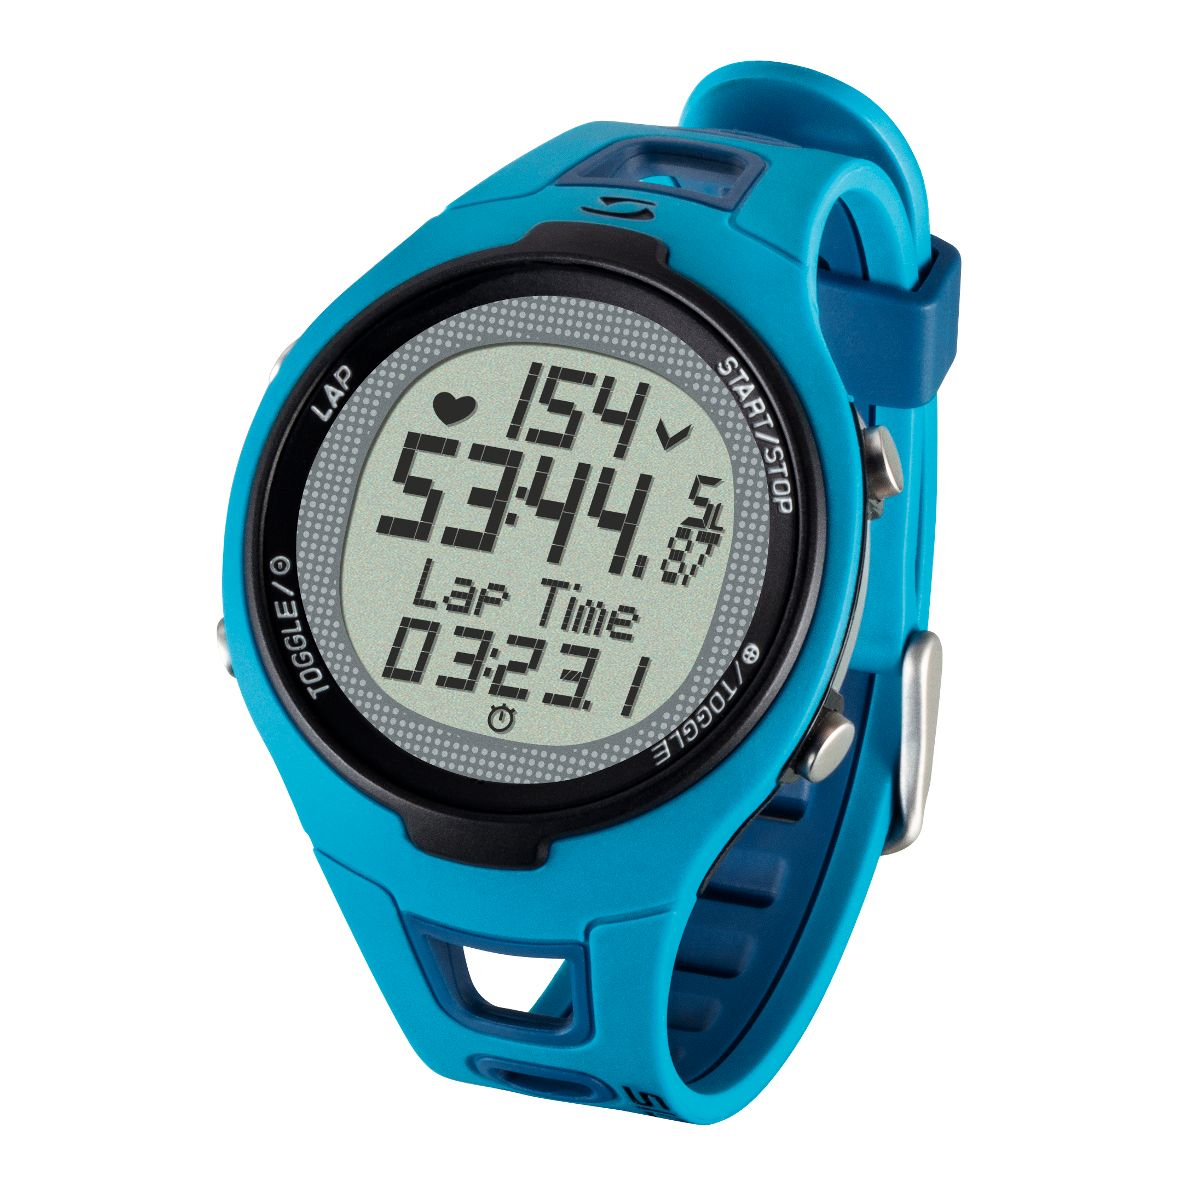 PC 15.11 heart rate monitor watch with chest strap